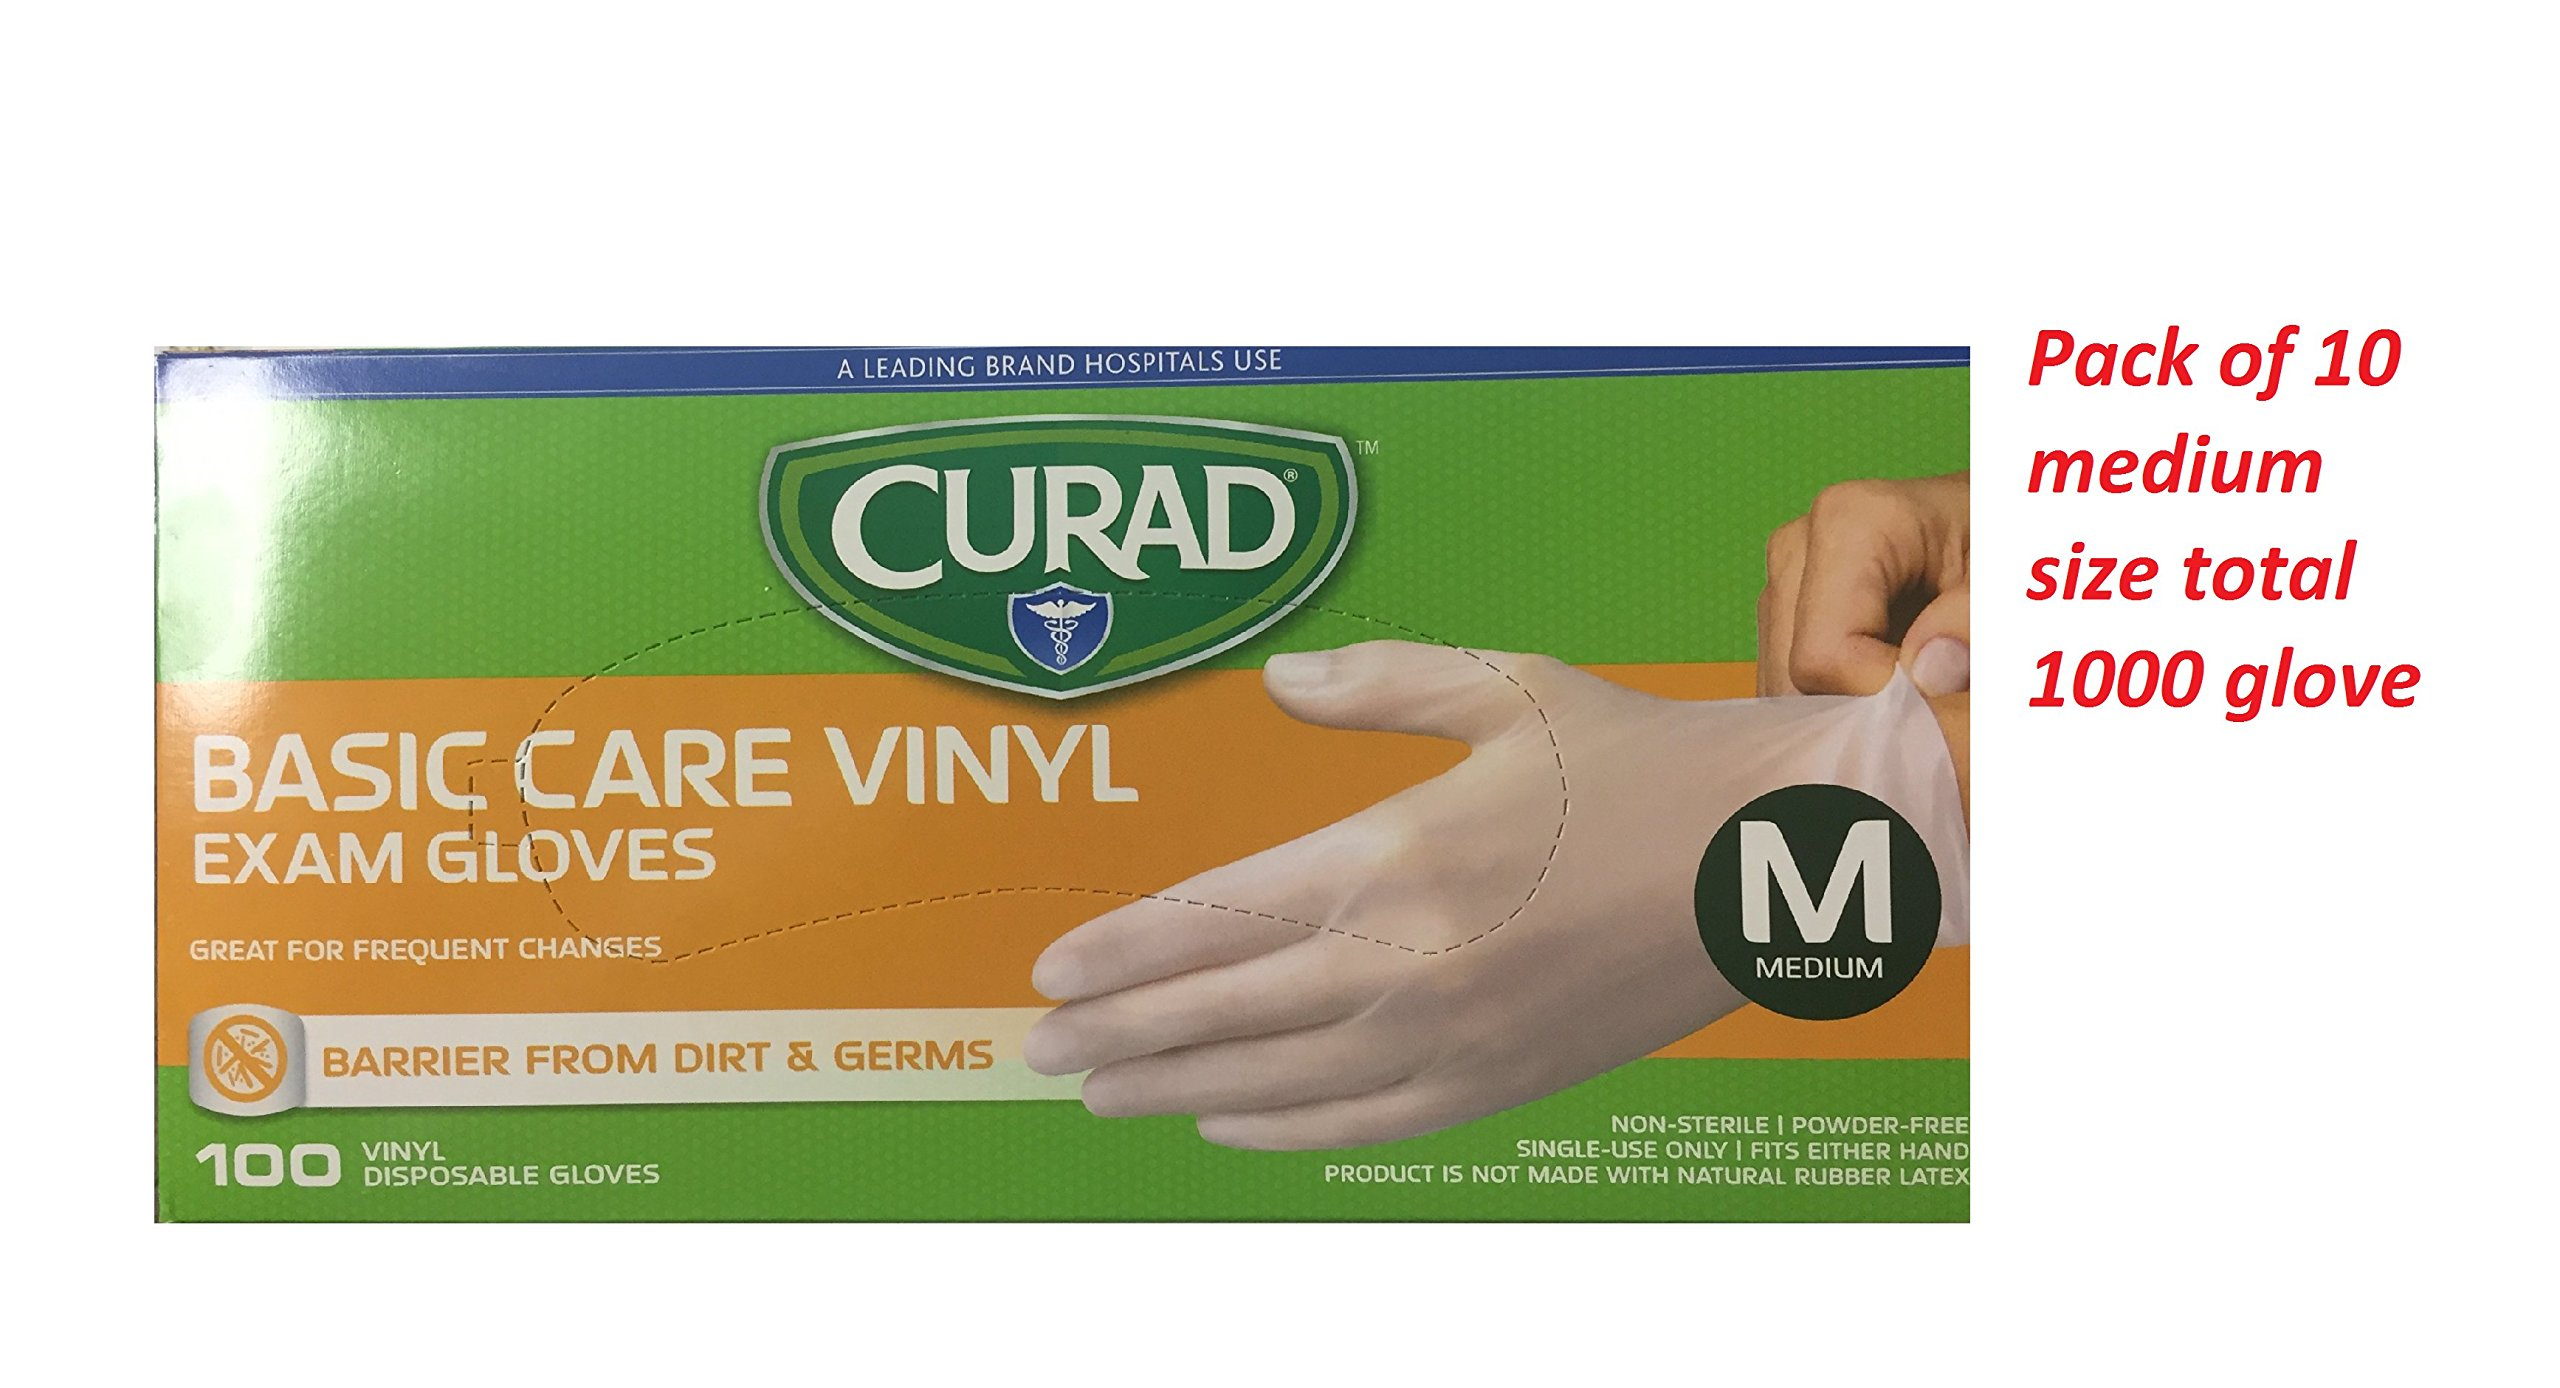 Curad Basic Care Vinyl Exam Gloves, Medium, 100 Count (Pack of 10) (Total 1000 Medium size gloves) by Curad (Image #1)